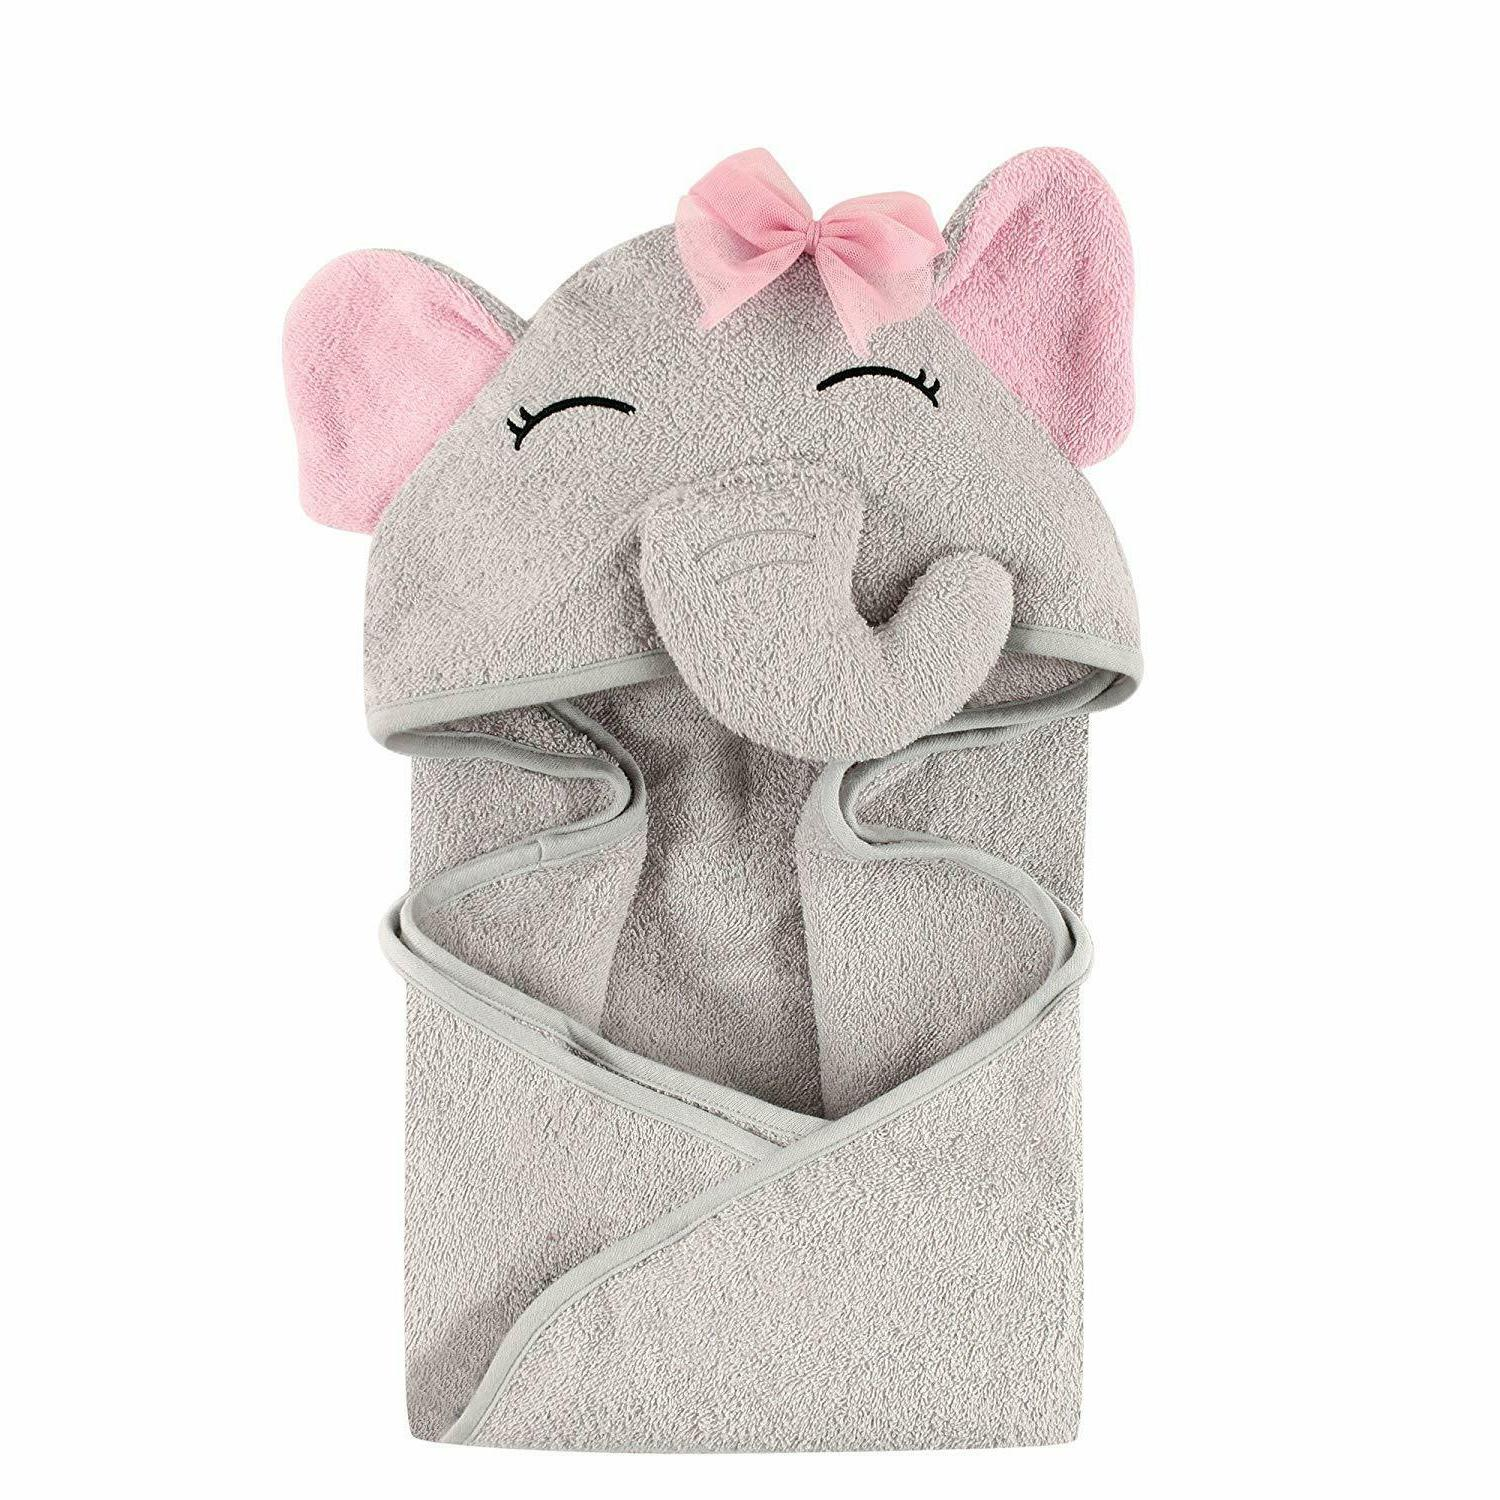 Hudson Baby Unisex Baby Animal Face Hooded Towel, Pretty Ele